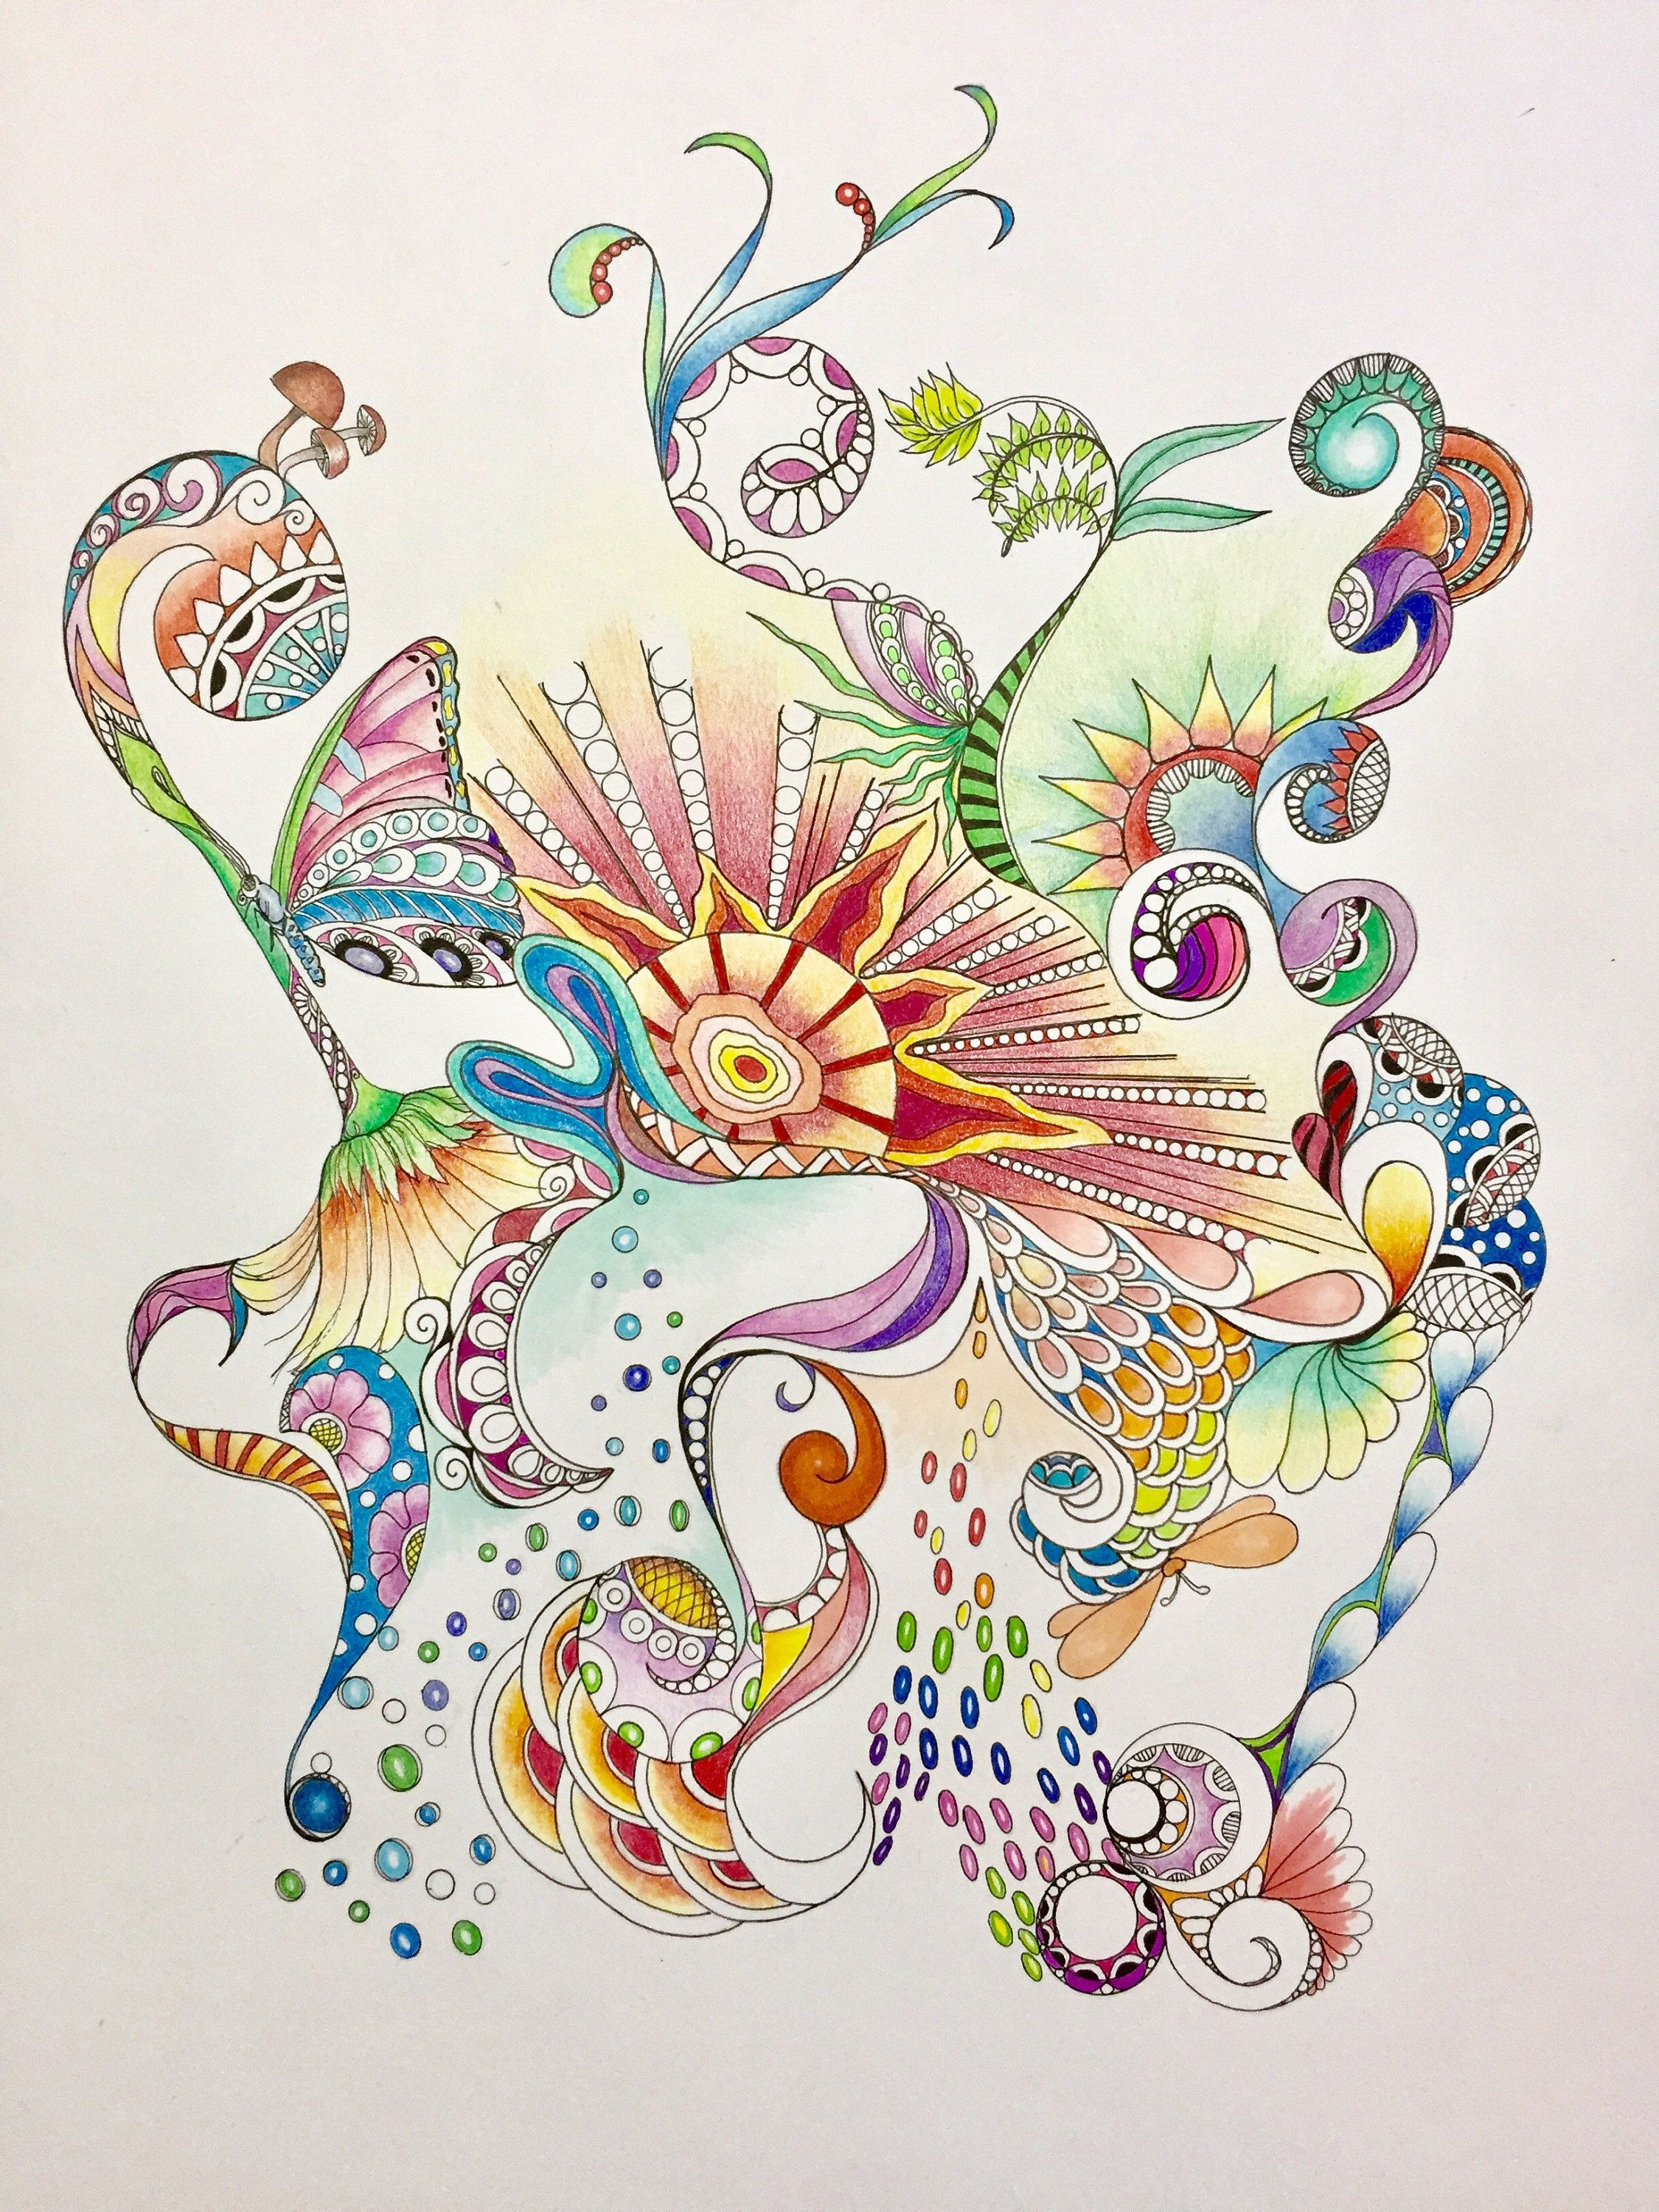 Zentangle Abstract Abstract Art Colored Zentangle Colored Abstract Zentangle Art Ink Colored Penci Colorful Abstract Art Zentangle Art Abstract Pencil Drawings